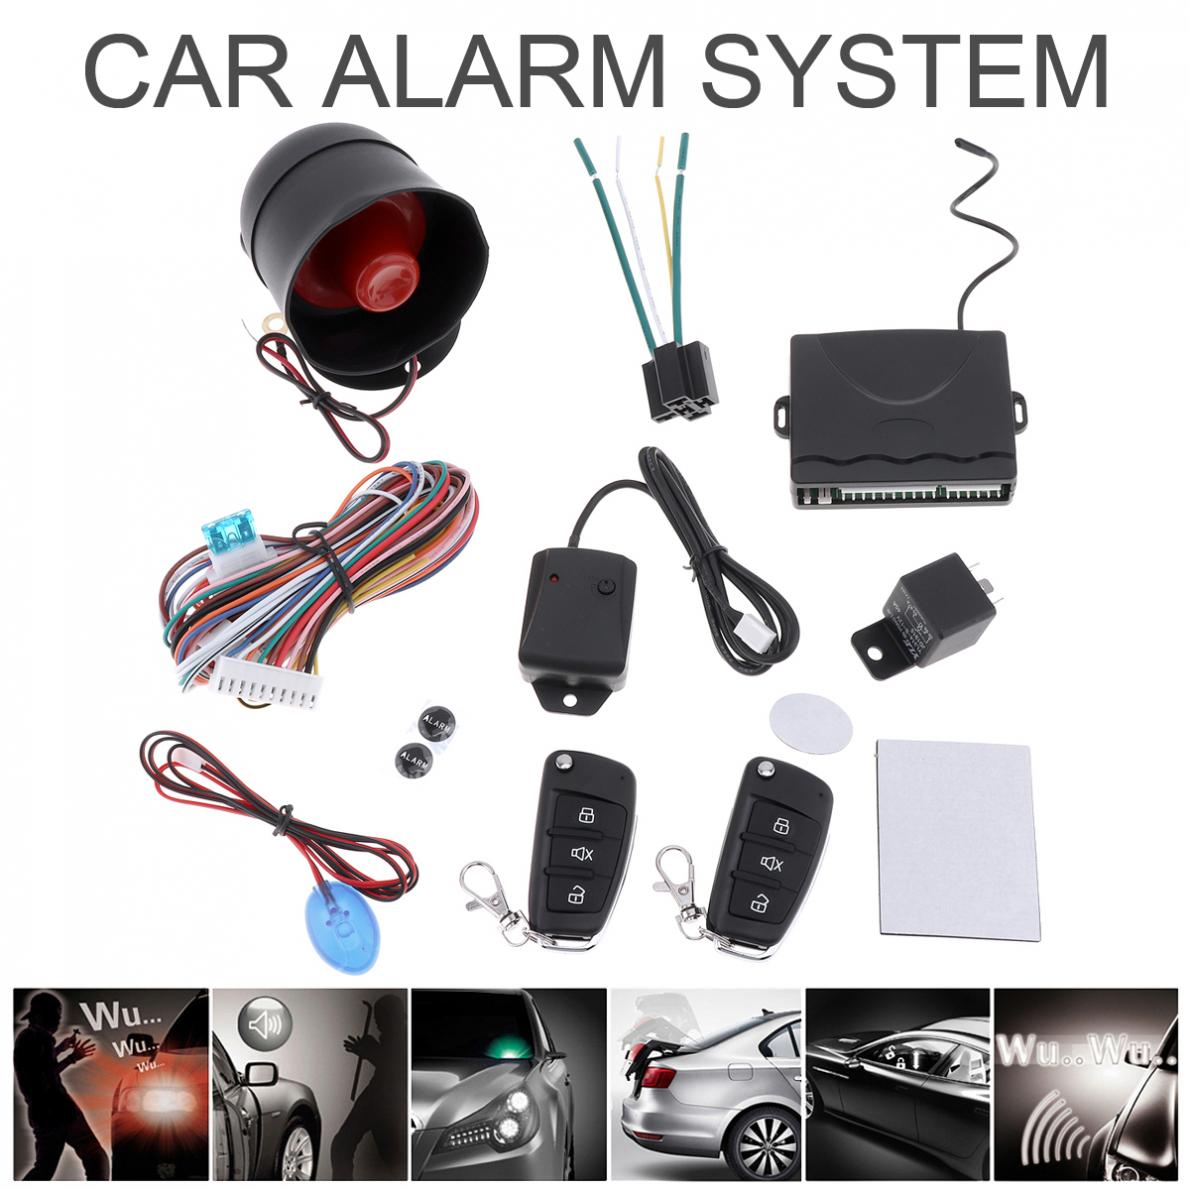 12V Auto Car Alarm Systems Vehicle Remote Central Kit Door Lock Locking Keyless Entry System Central Locking with Remote Control car alarm systems auto remote central kit door lock vehicle keyless entry system central locking with remote control universal